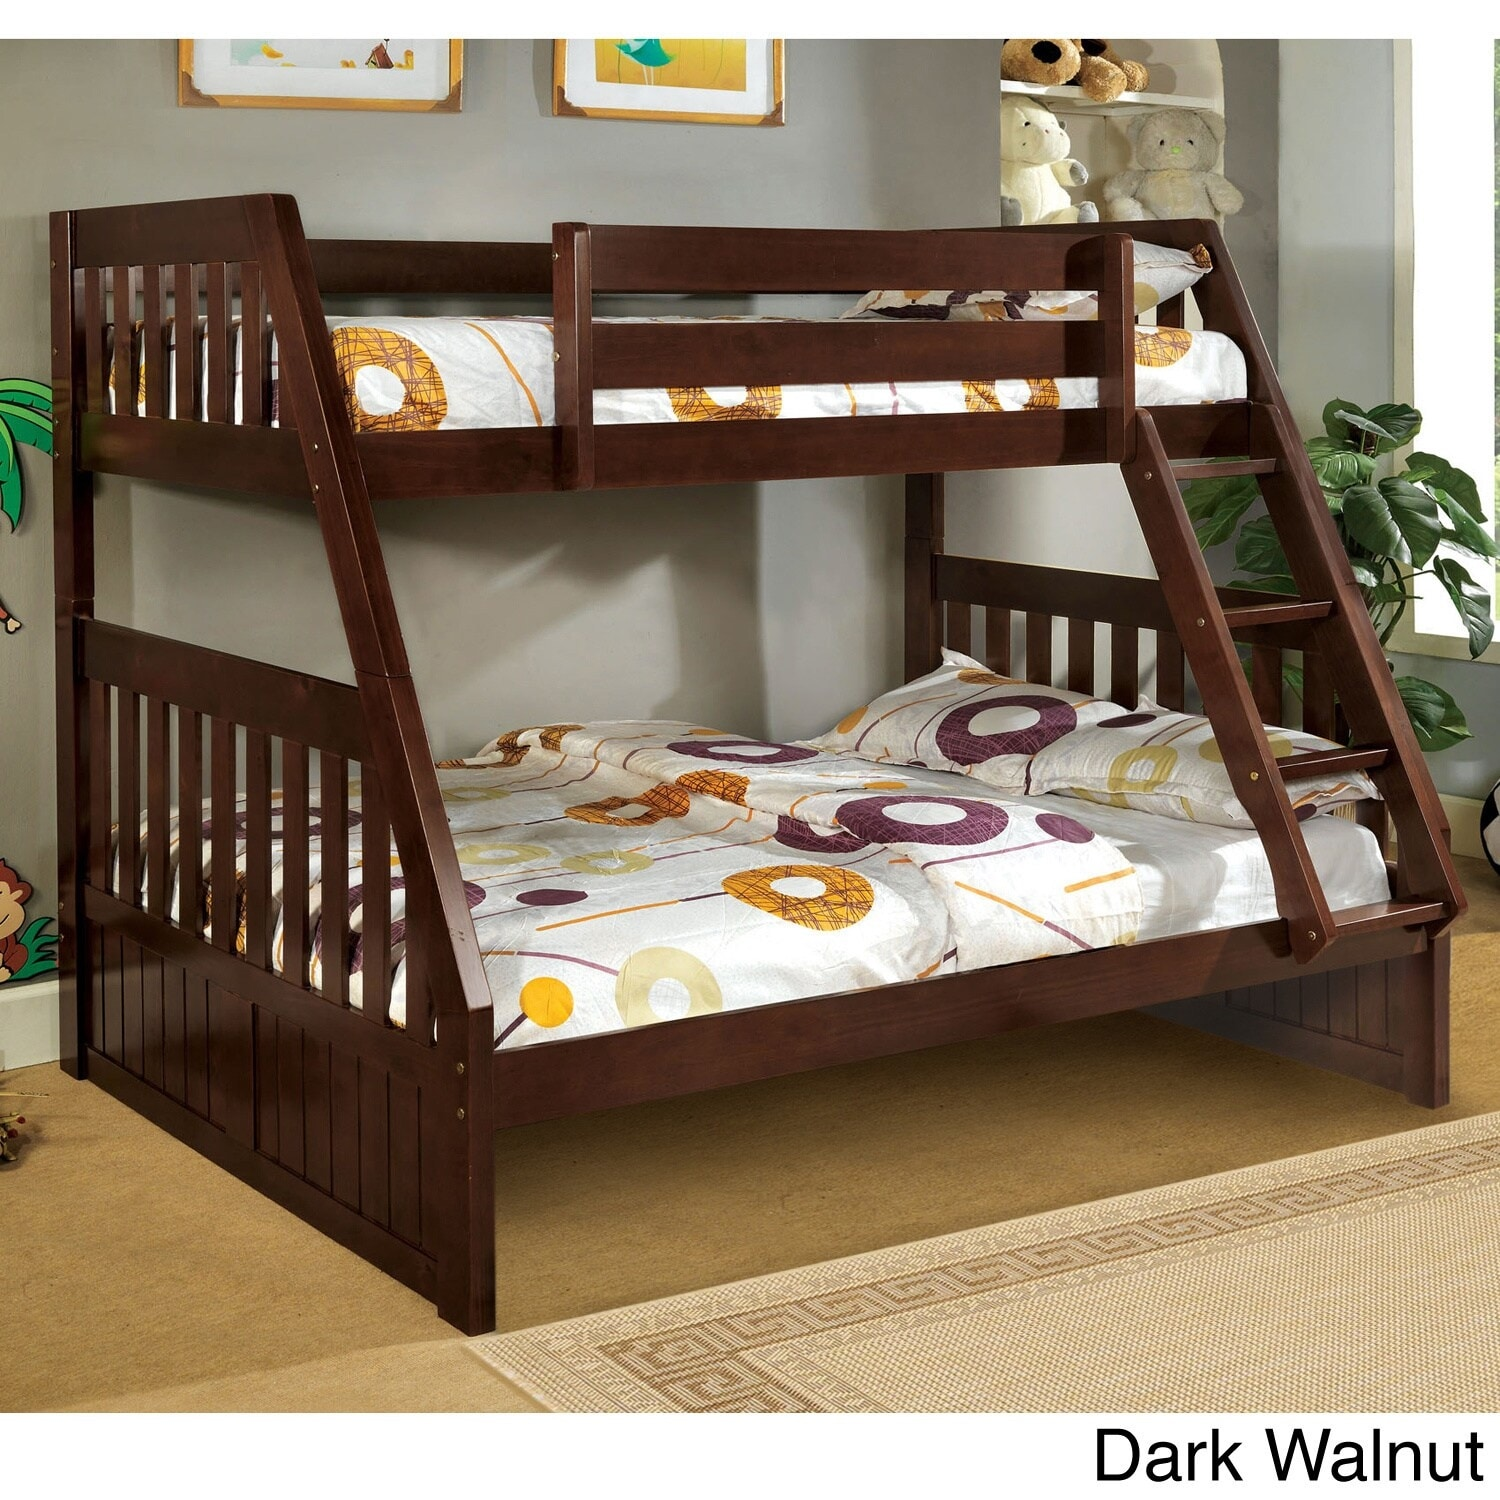 Picture of: Furniture Of America Kerc Mission Twin Over Full Solid Wood Bunk Bed Overstock 9183956 Dark Walnut